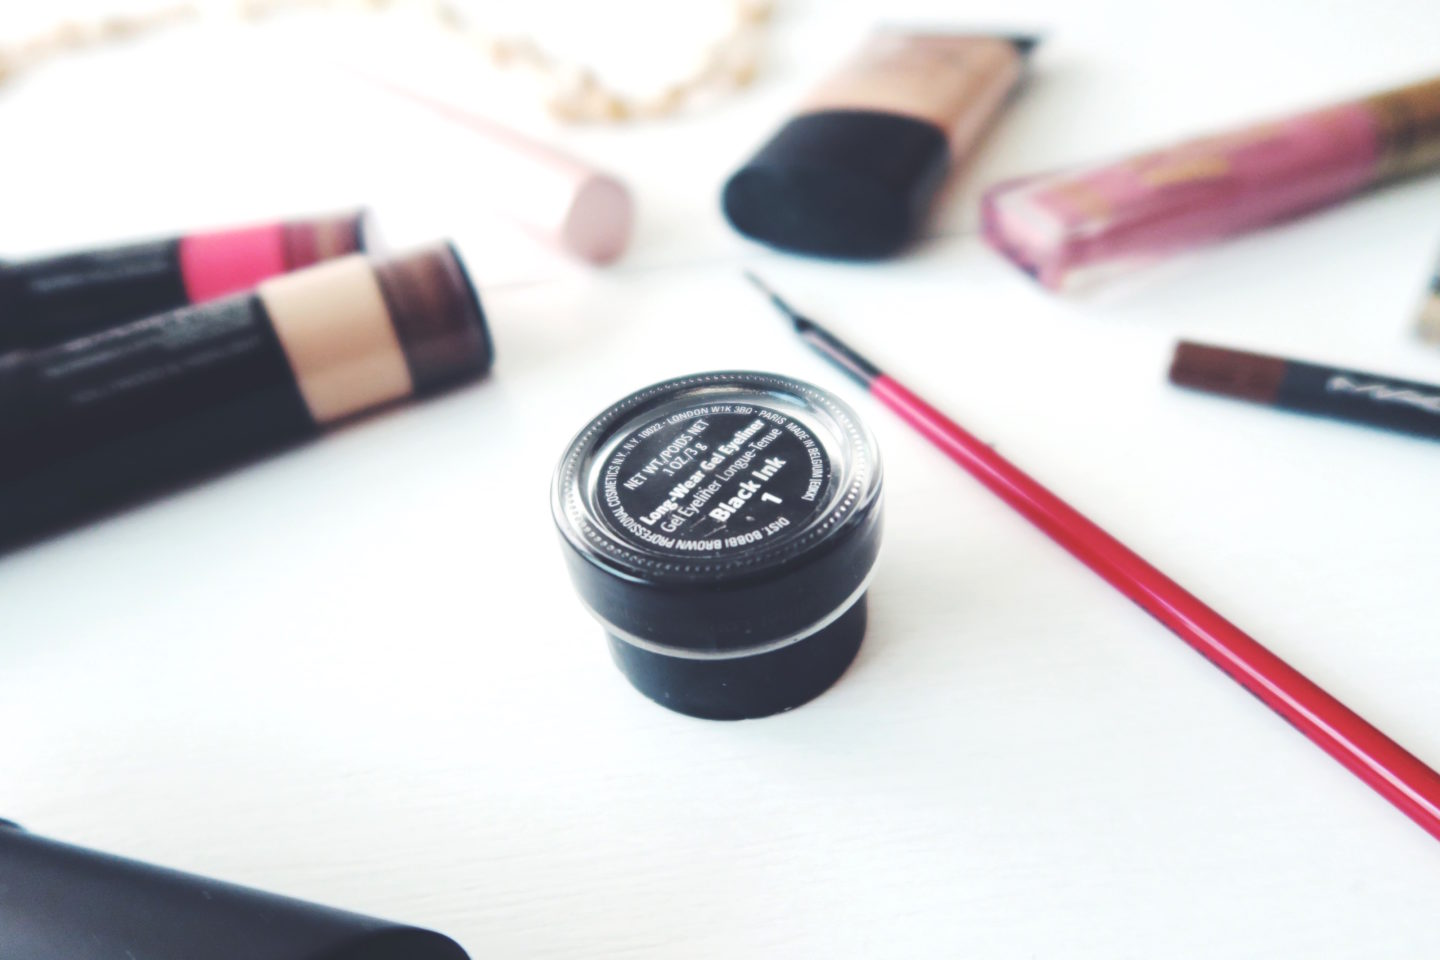 Today on the blog: Cream Makeup Roundup for Fall! - thecasualfree.com